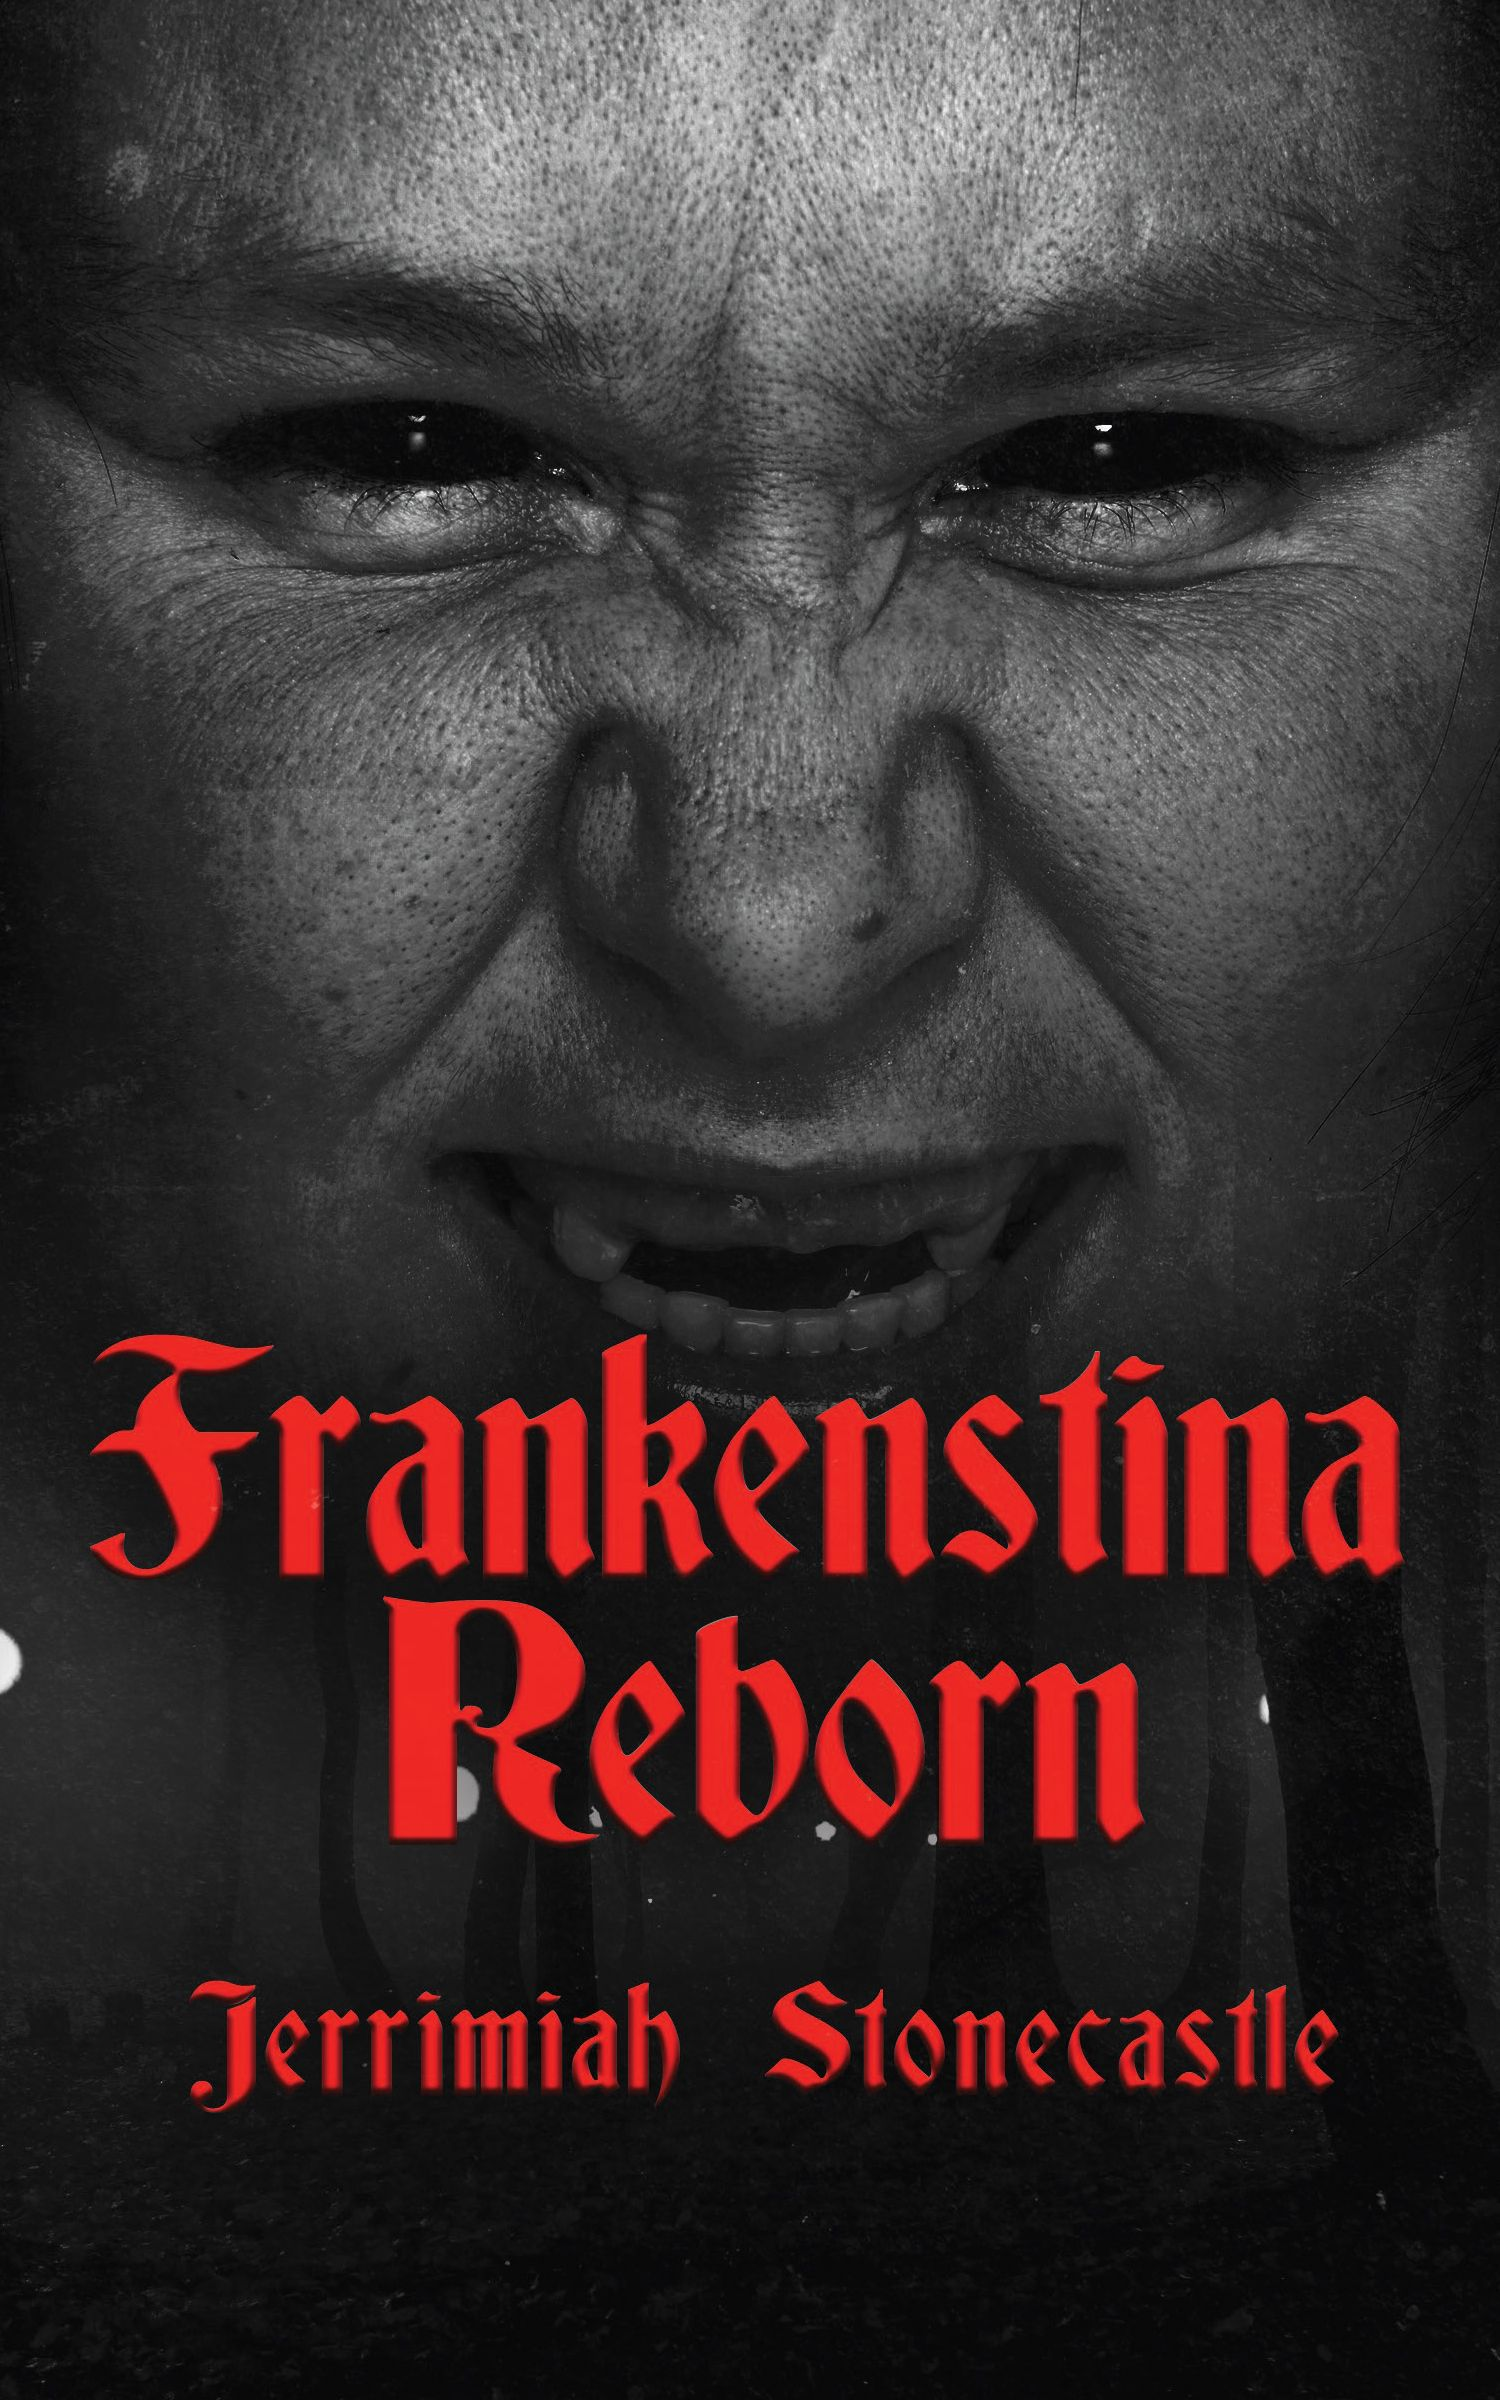 Frankenstina Reborn cover and sequel coming this Halloween